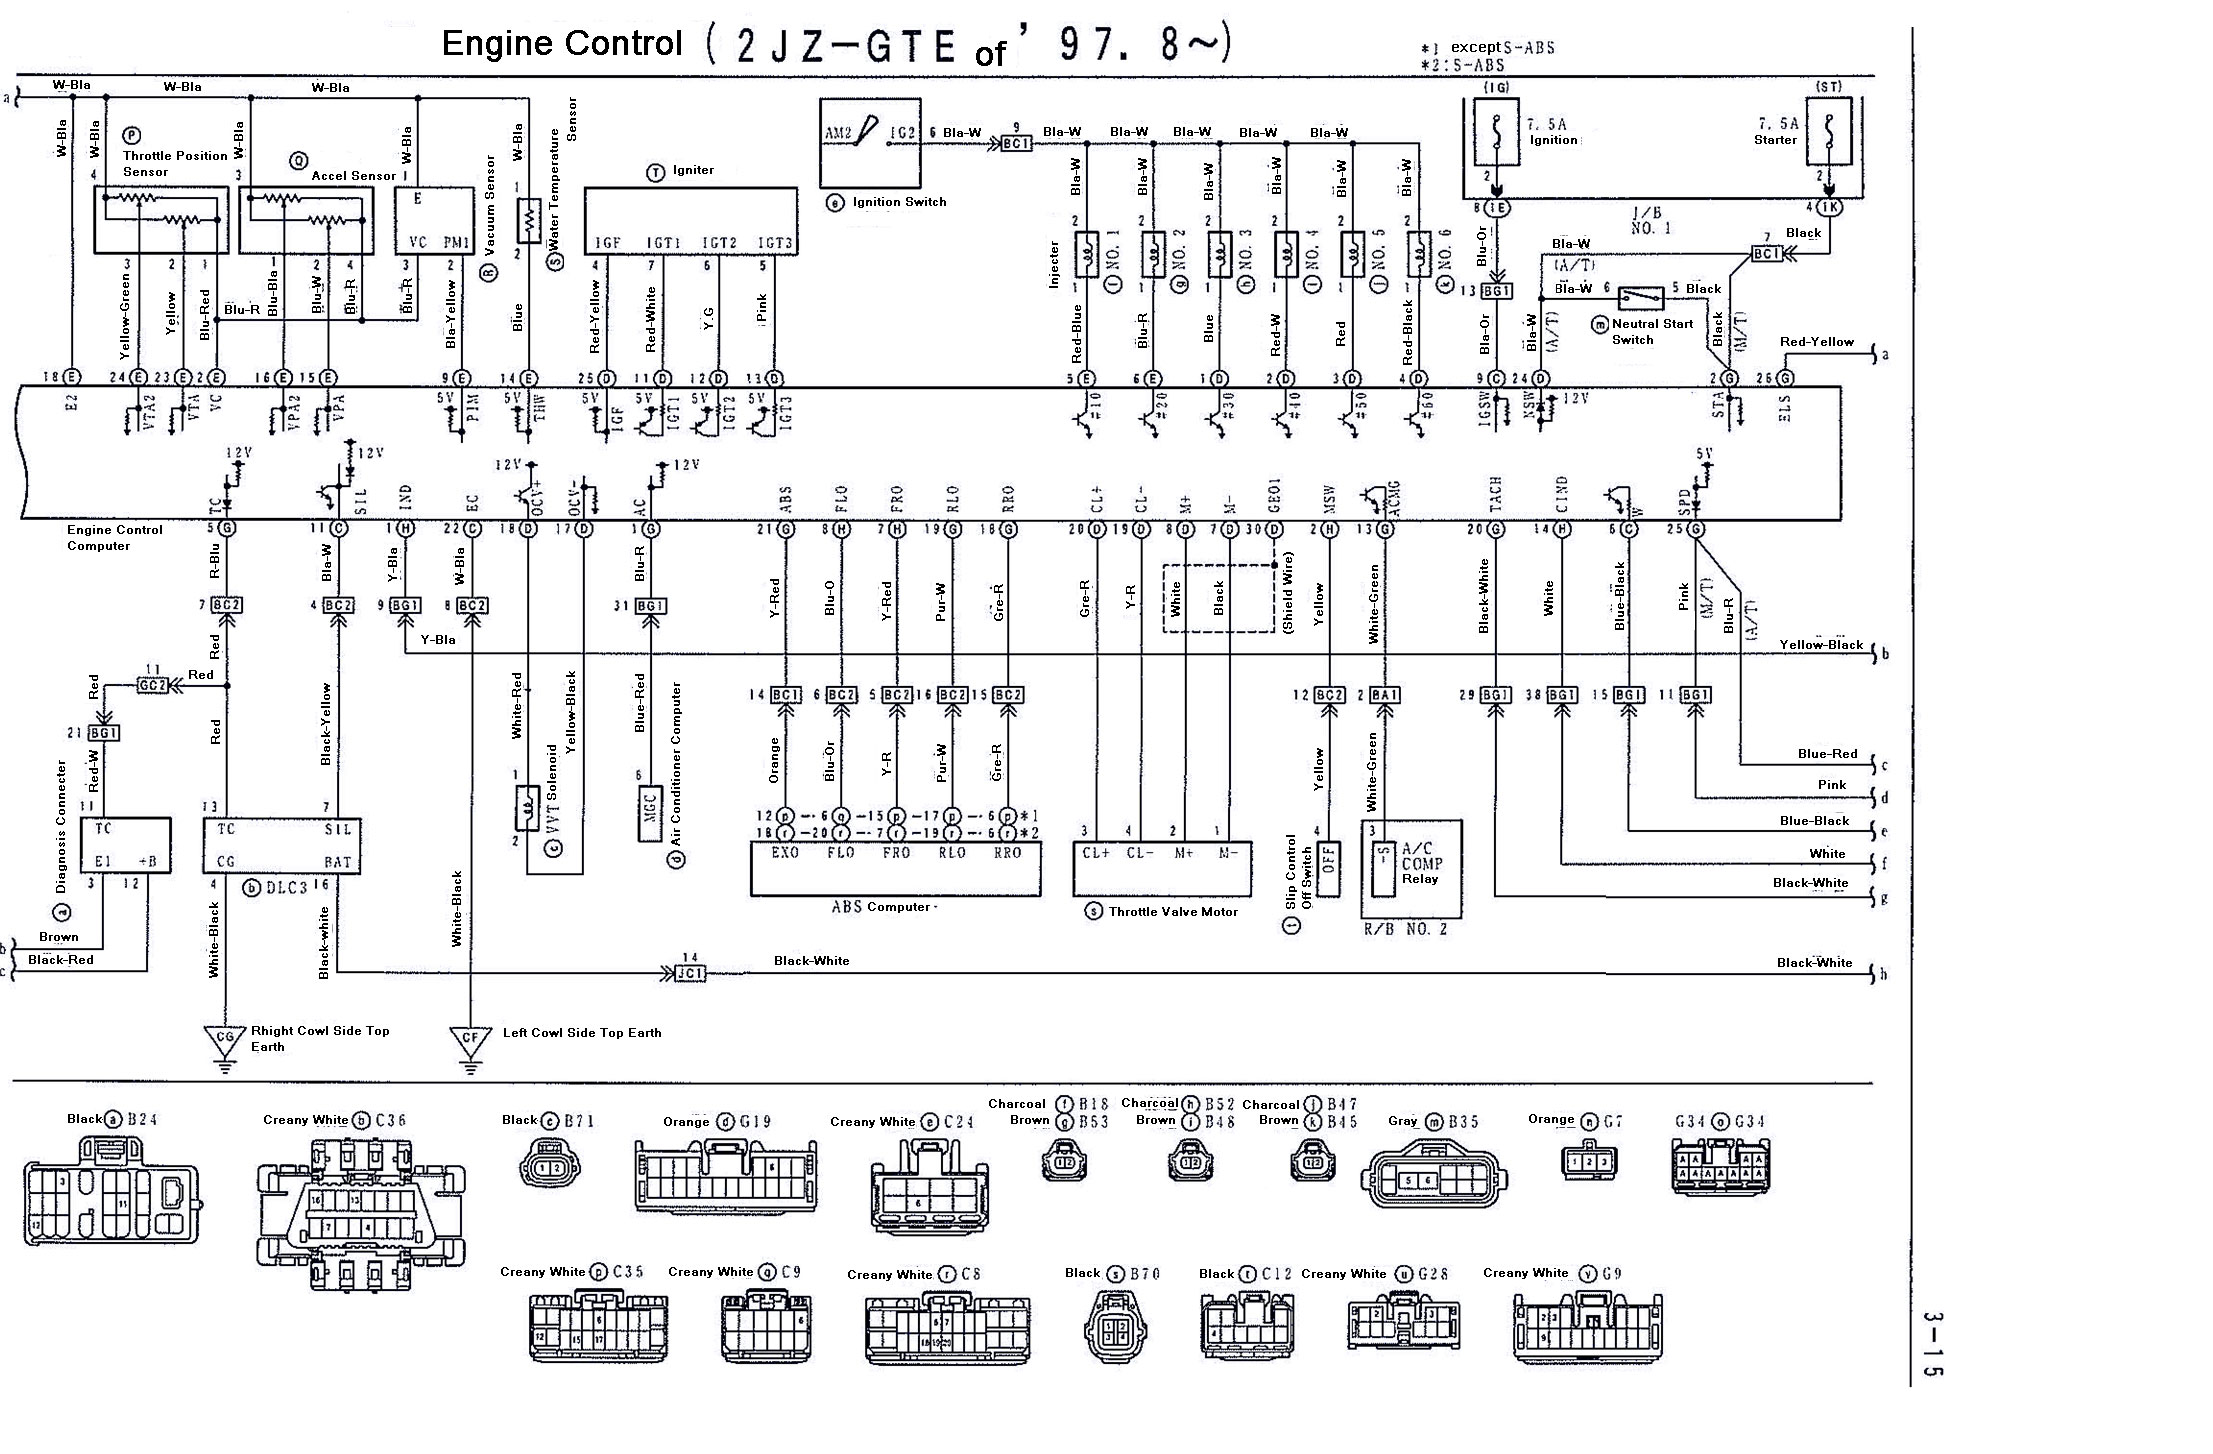 final3.15 supra 2jzgte vvti wiring diagrams (97 8 02) 2jzgarage mk3 supra wiring diagram at soozxer.org